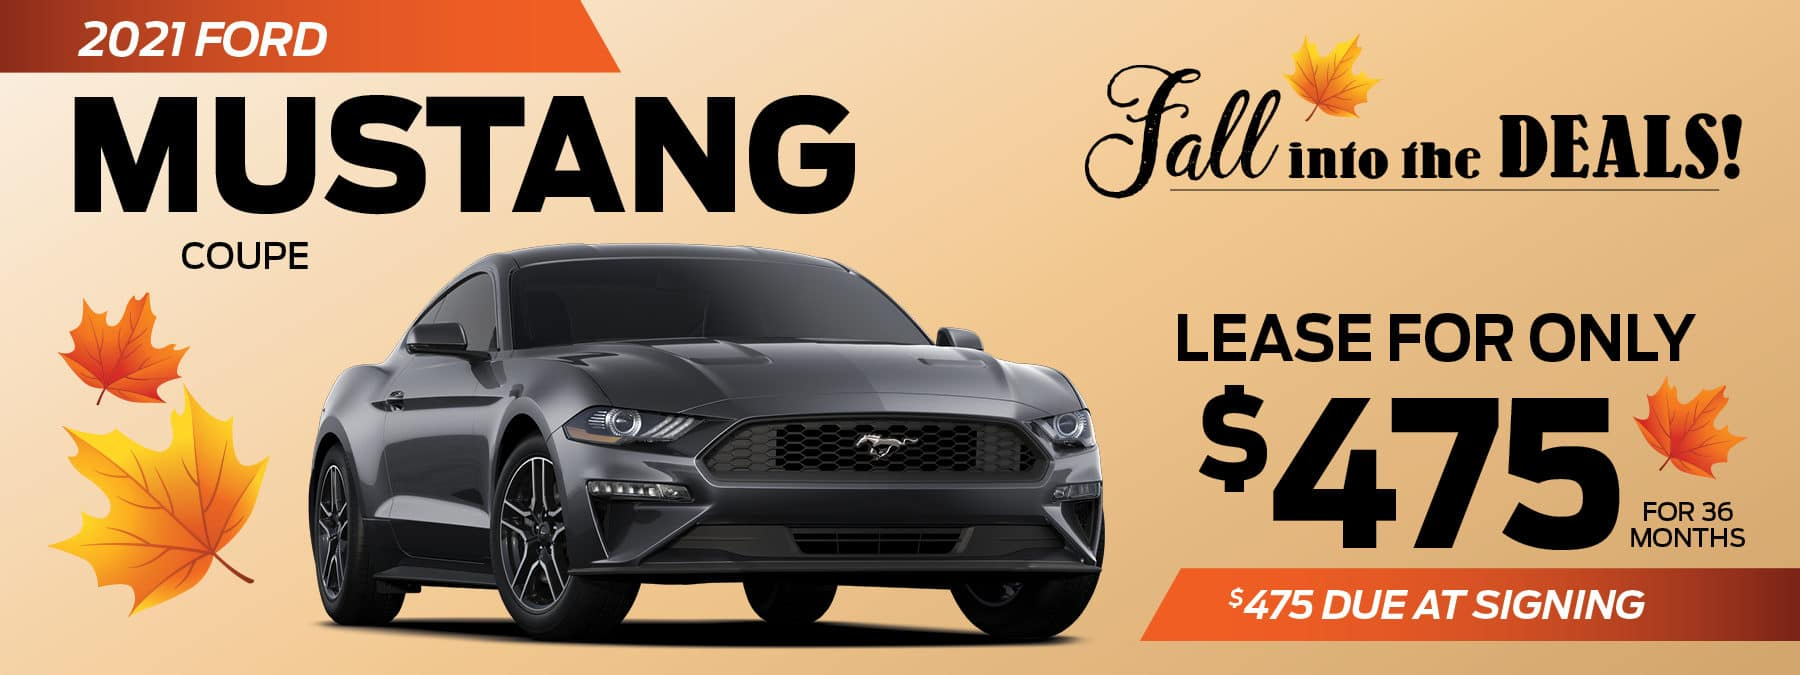 2021 Ford Mustang Coupe lease for $475 per month in Greensburg PA